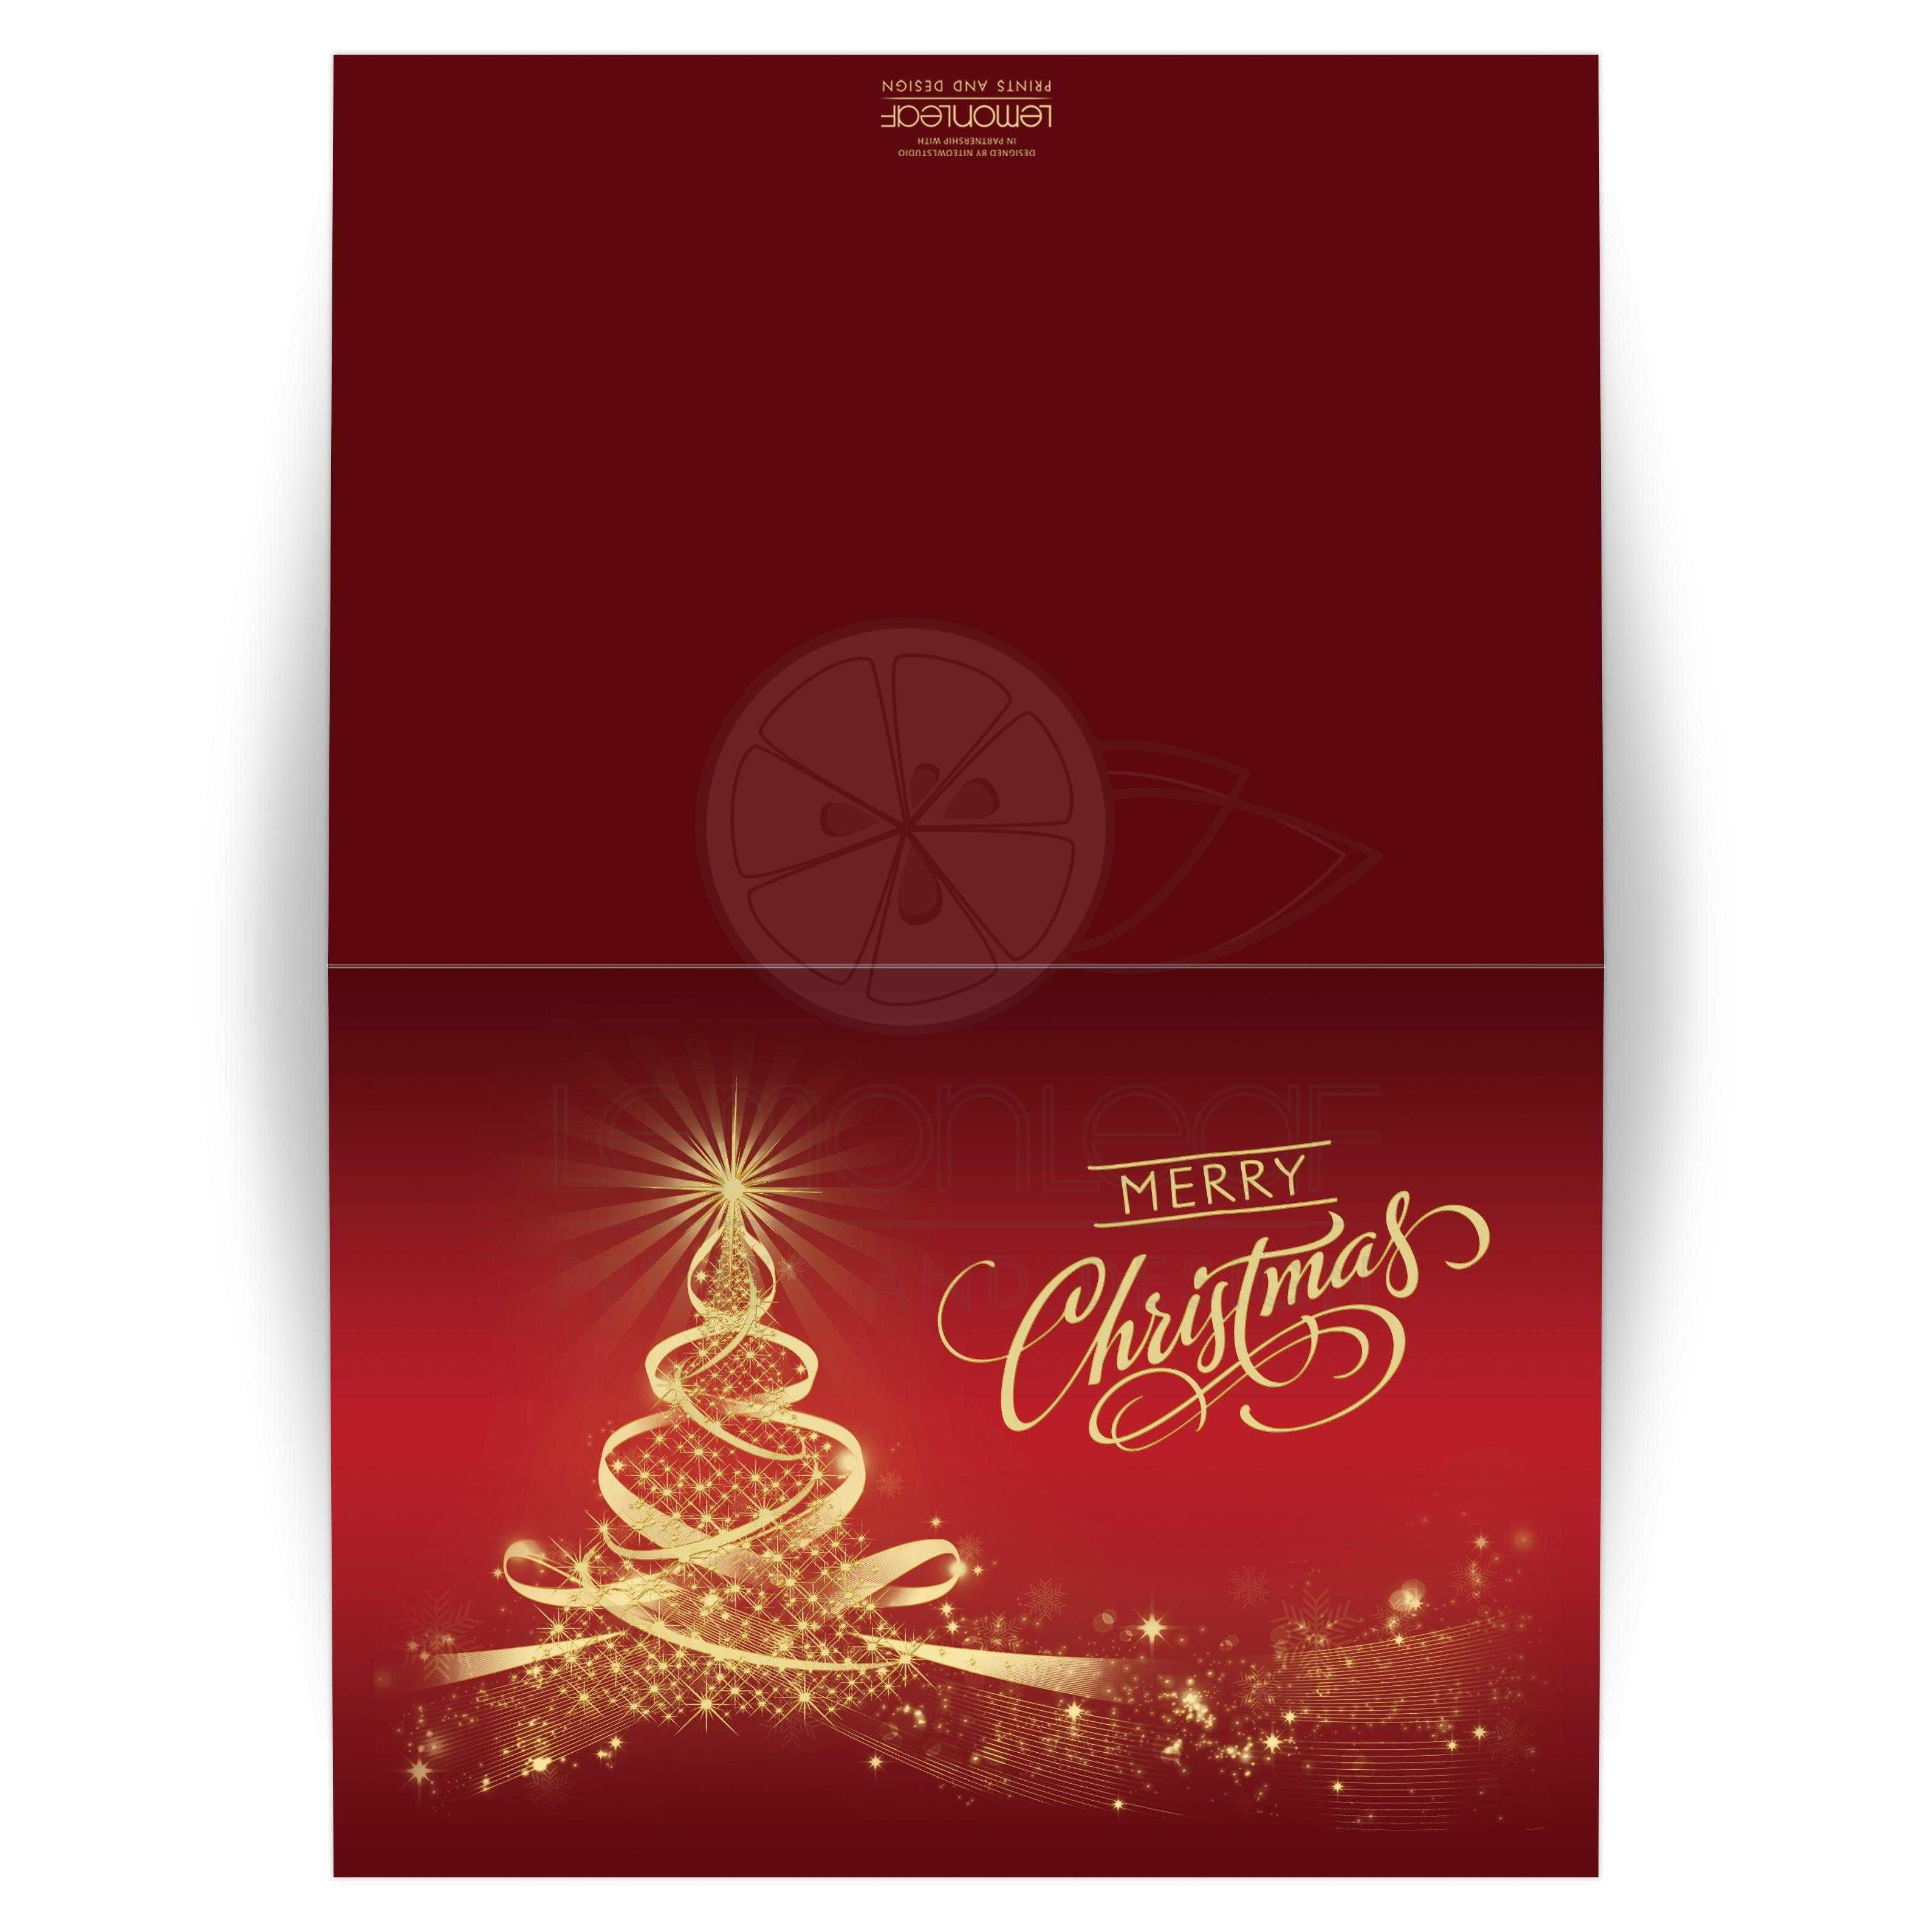 5x7 christmas or holiday card merry christmas red gold tree of lights best red and gold seasons greetings christmas card with tree of lights m4hsunfo